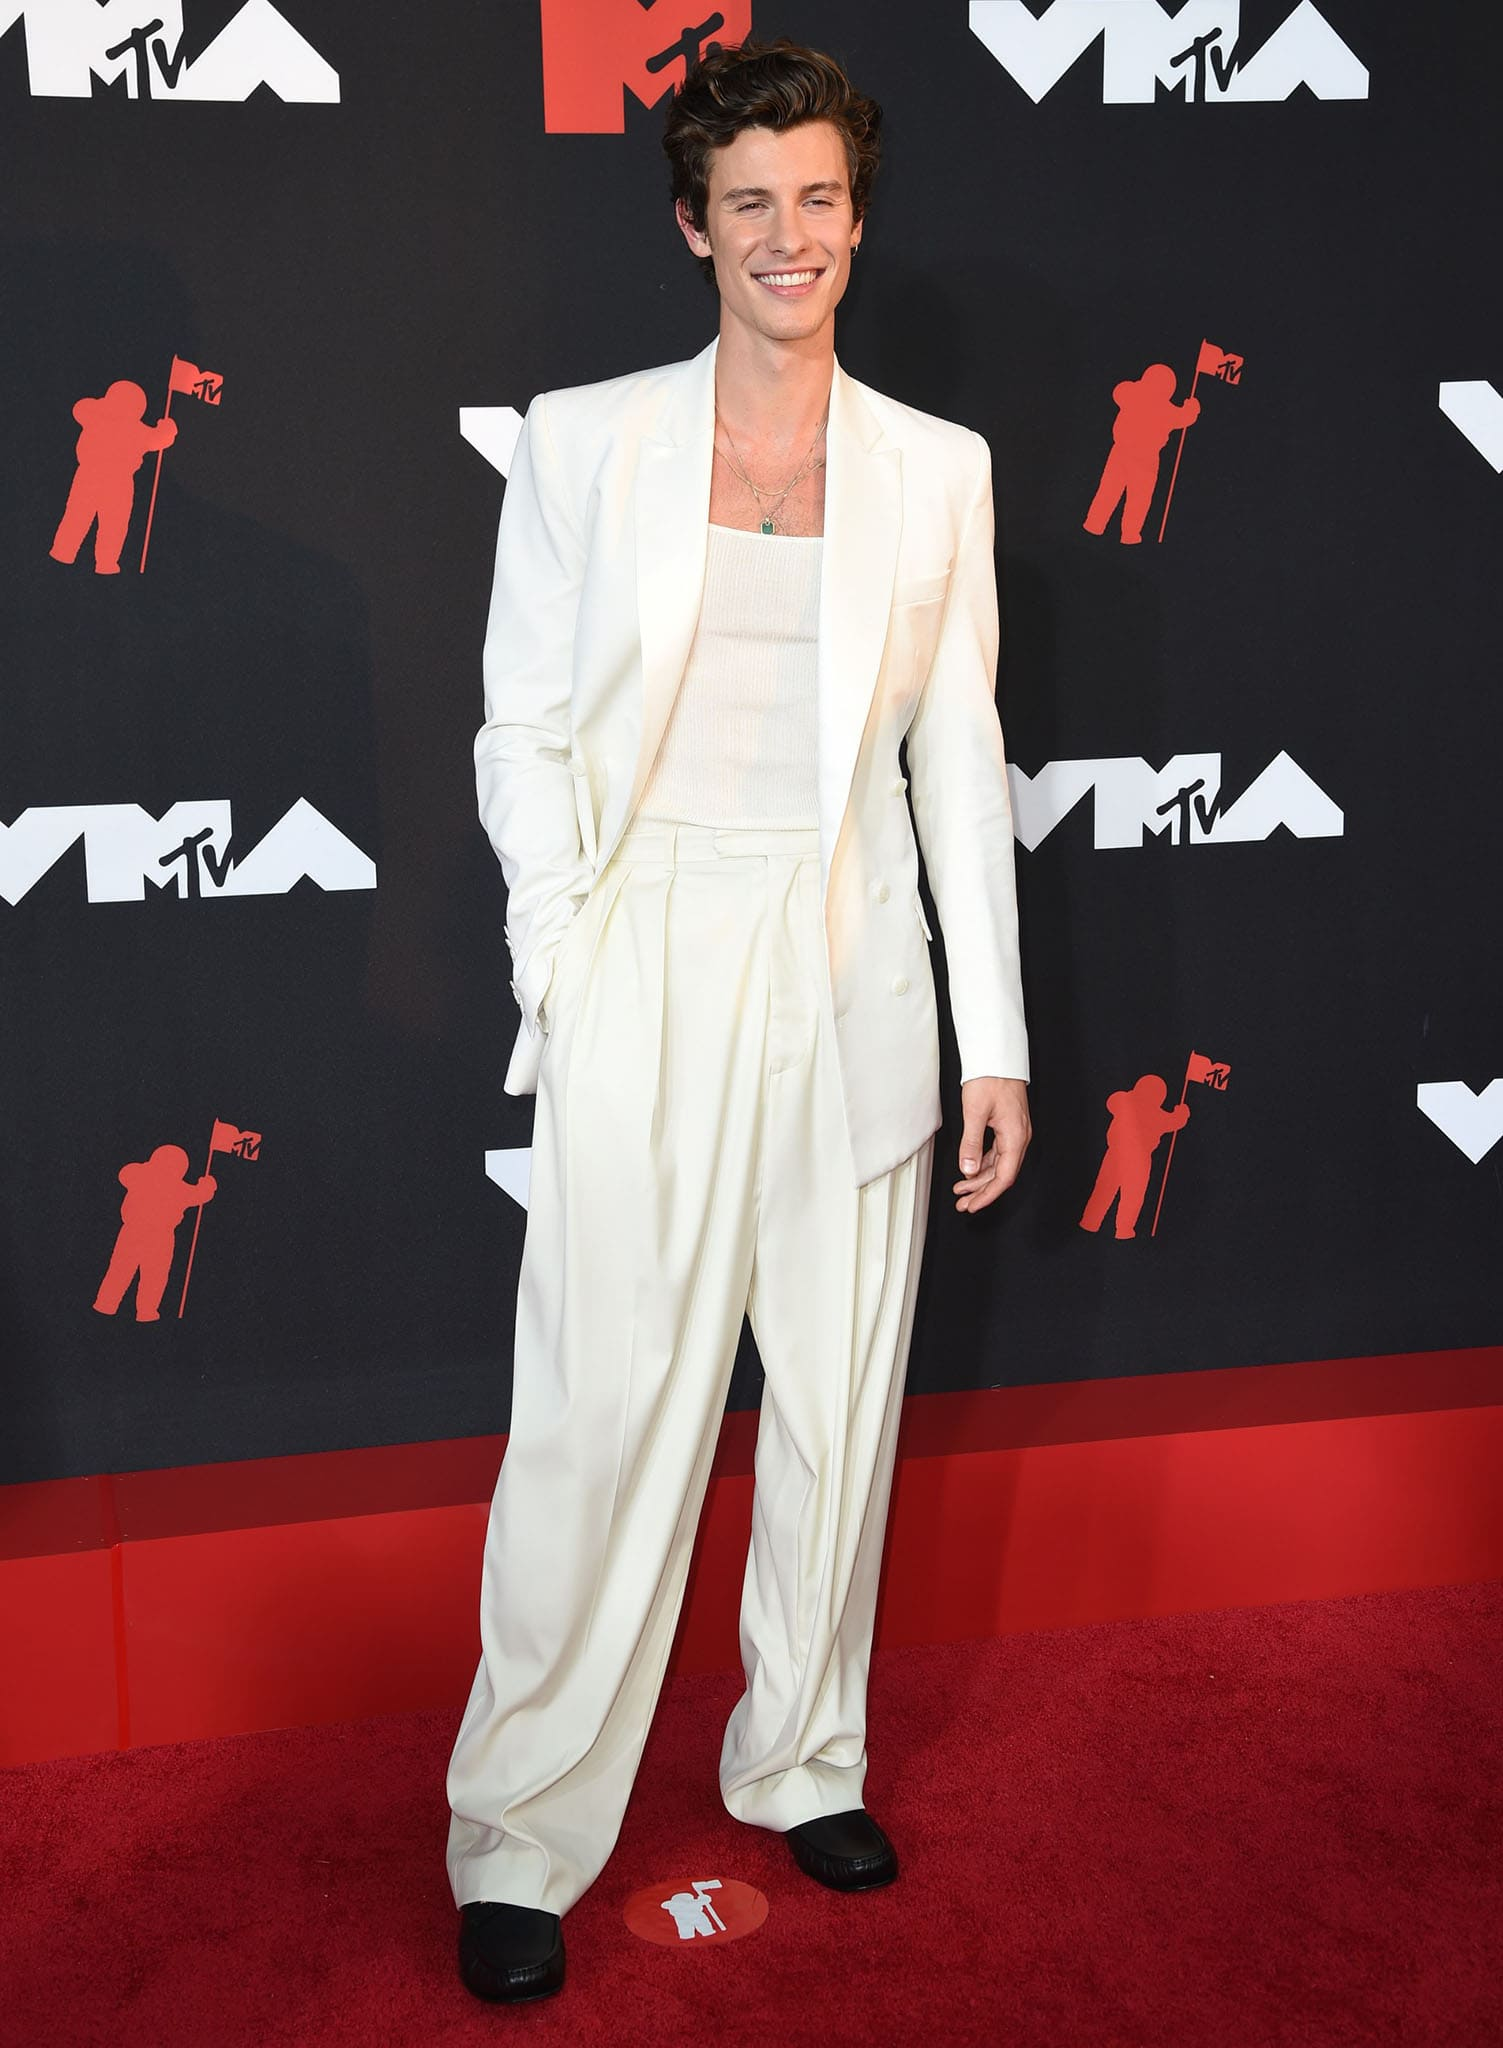 Shawn Mendes keeps it simple in a ribbed tank top with white blazer and cream pants